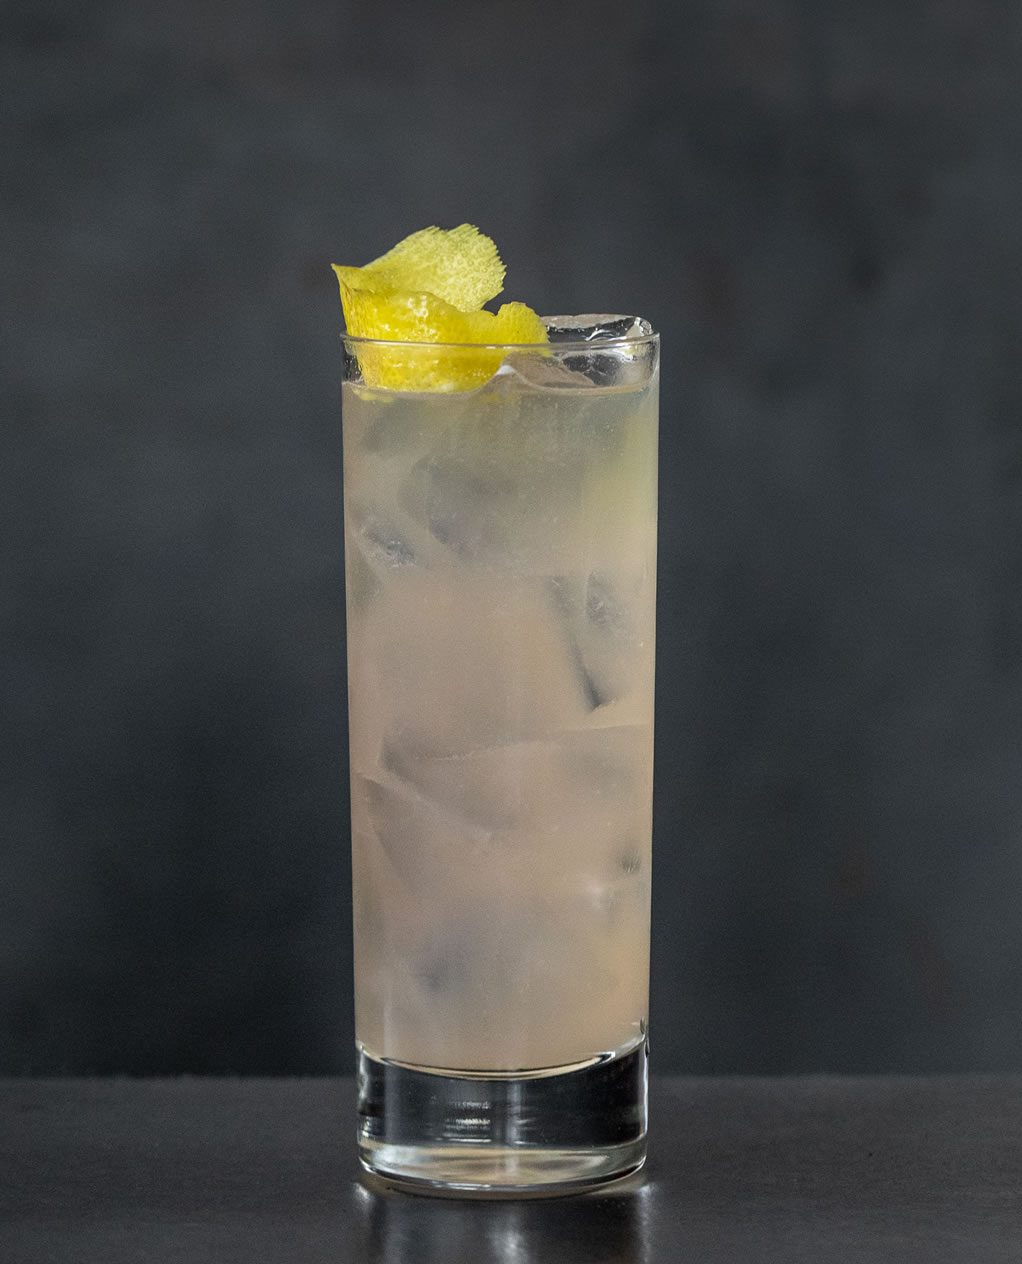 09-2019_OTOTO_Cocktail_Final Images_Web-Res_09